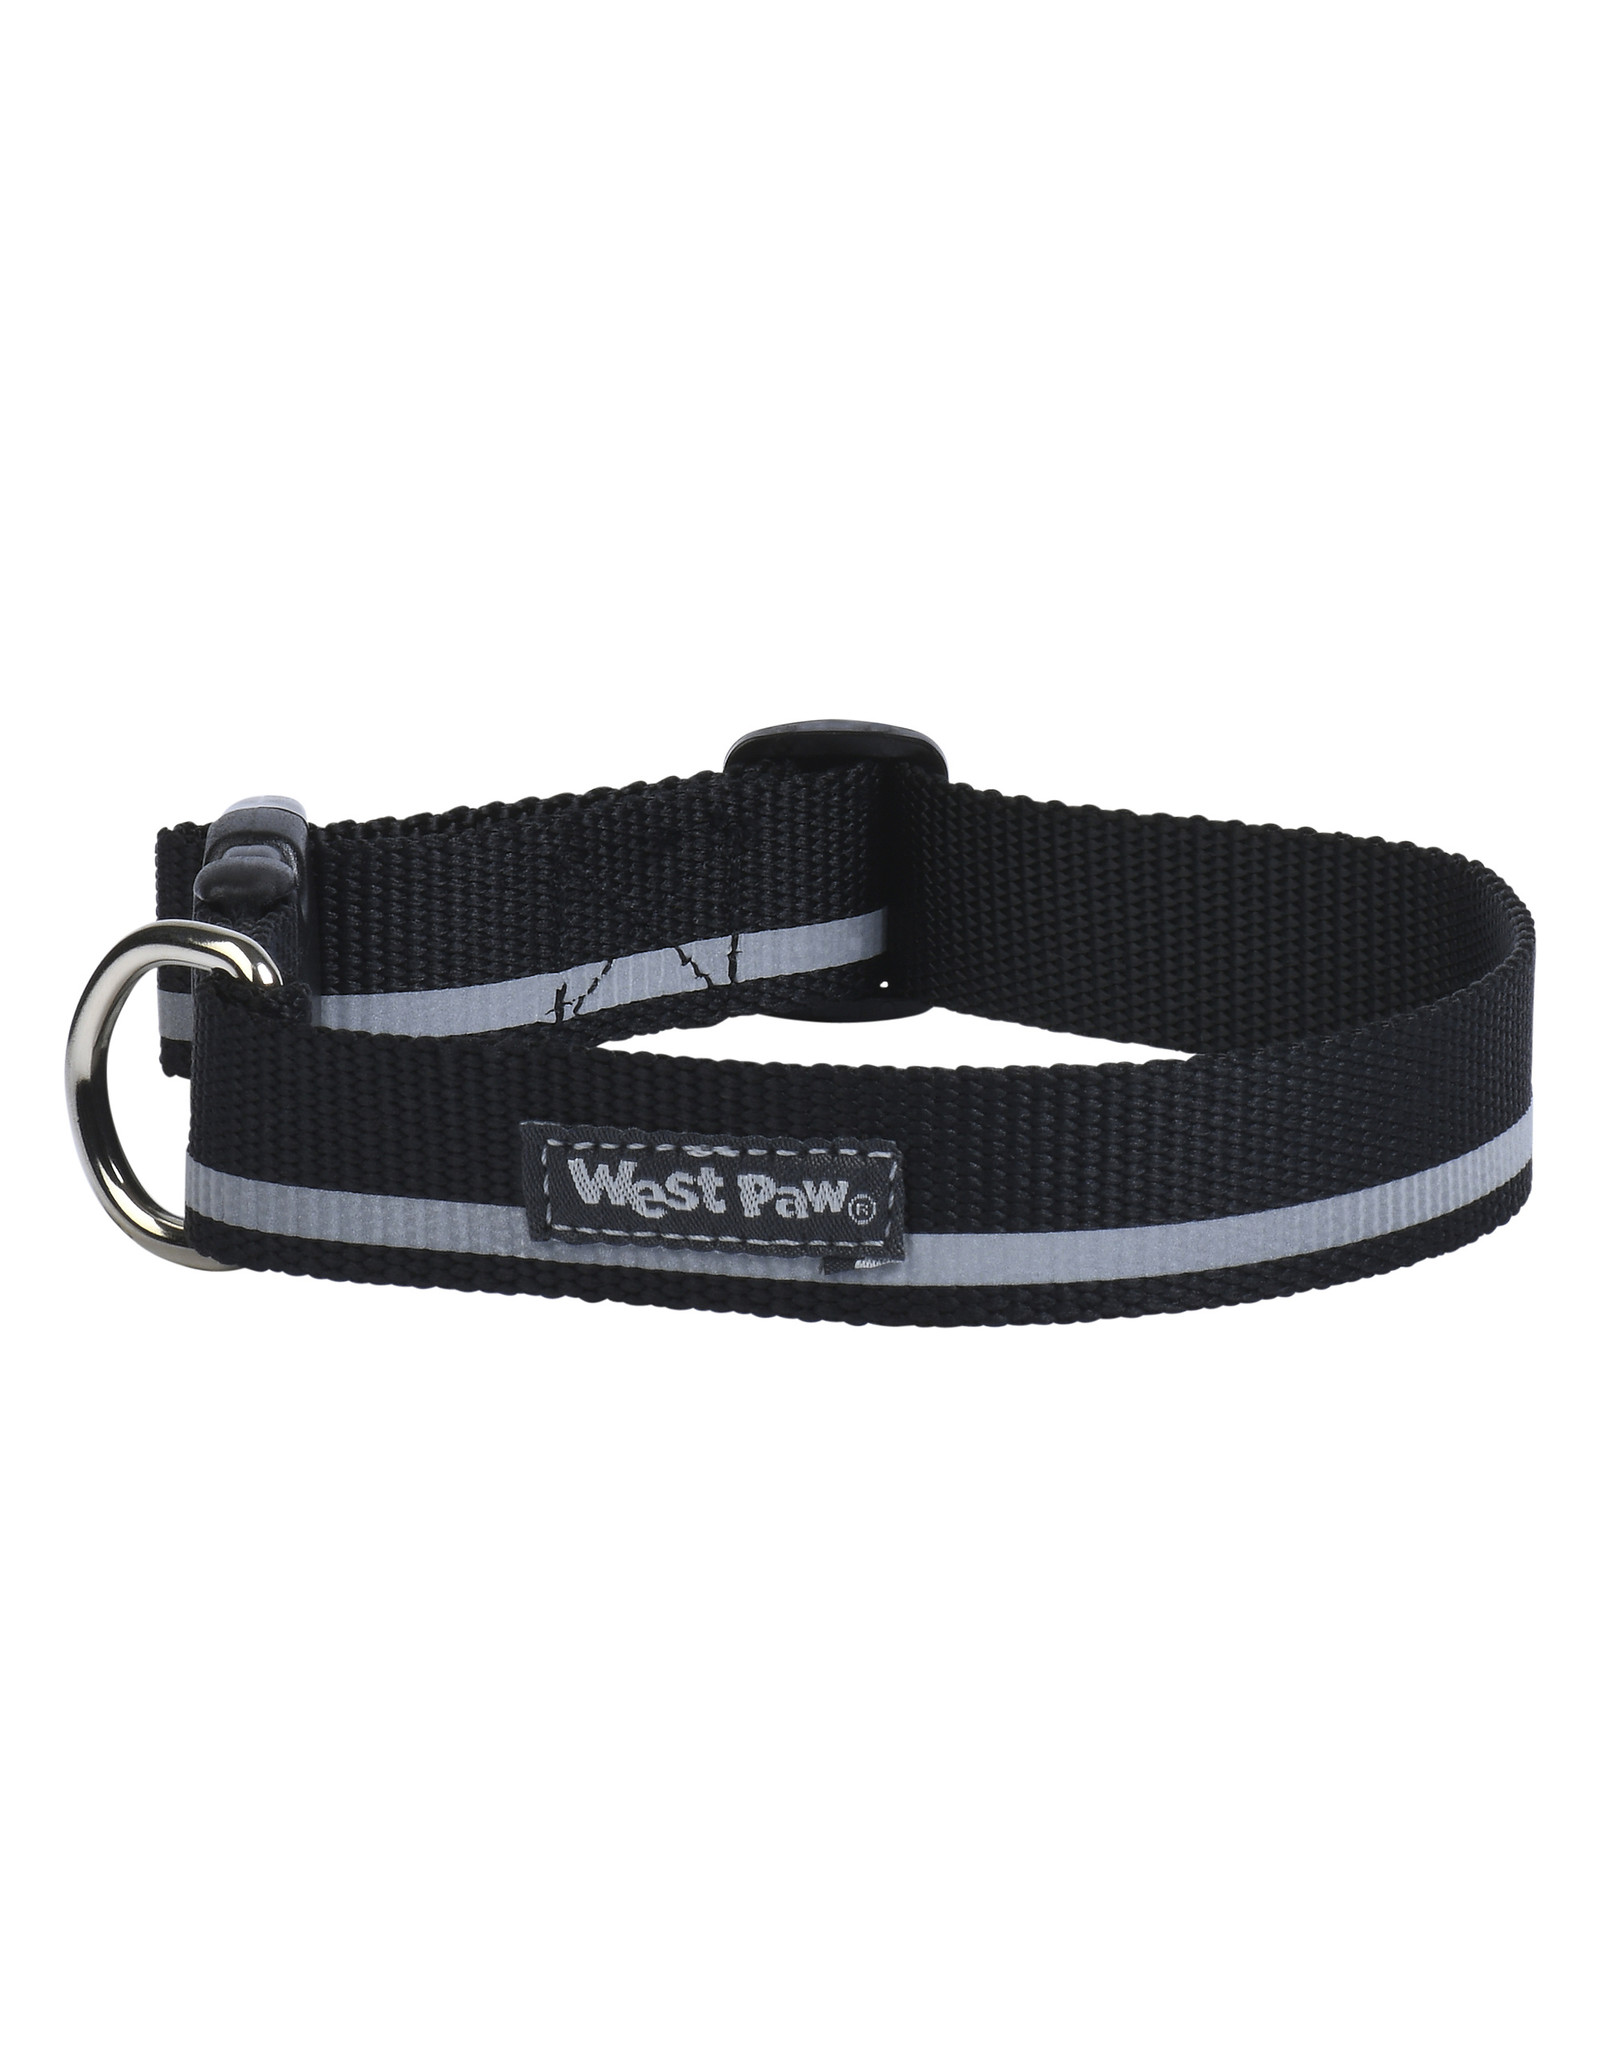 West Paw Designs Westpaw: Strolls Collar Medium Black Reflective